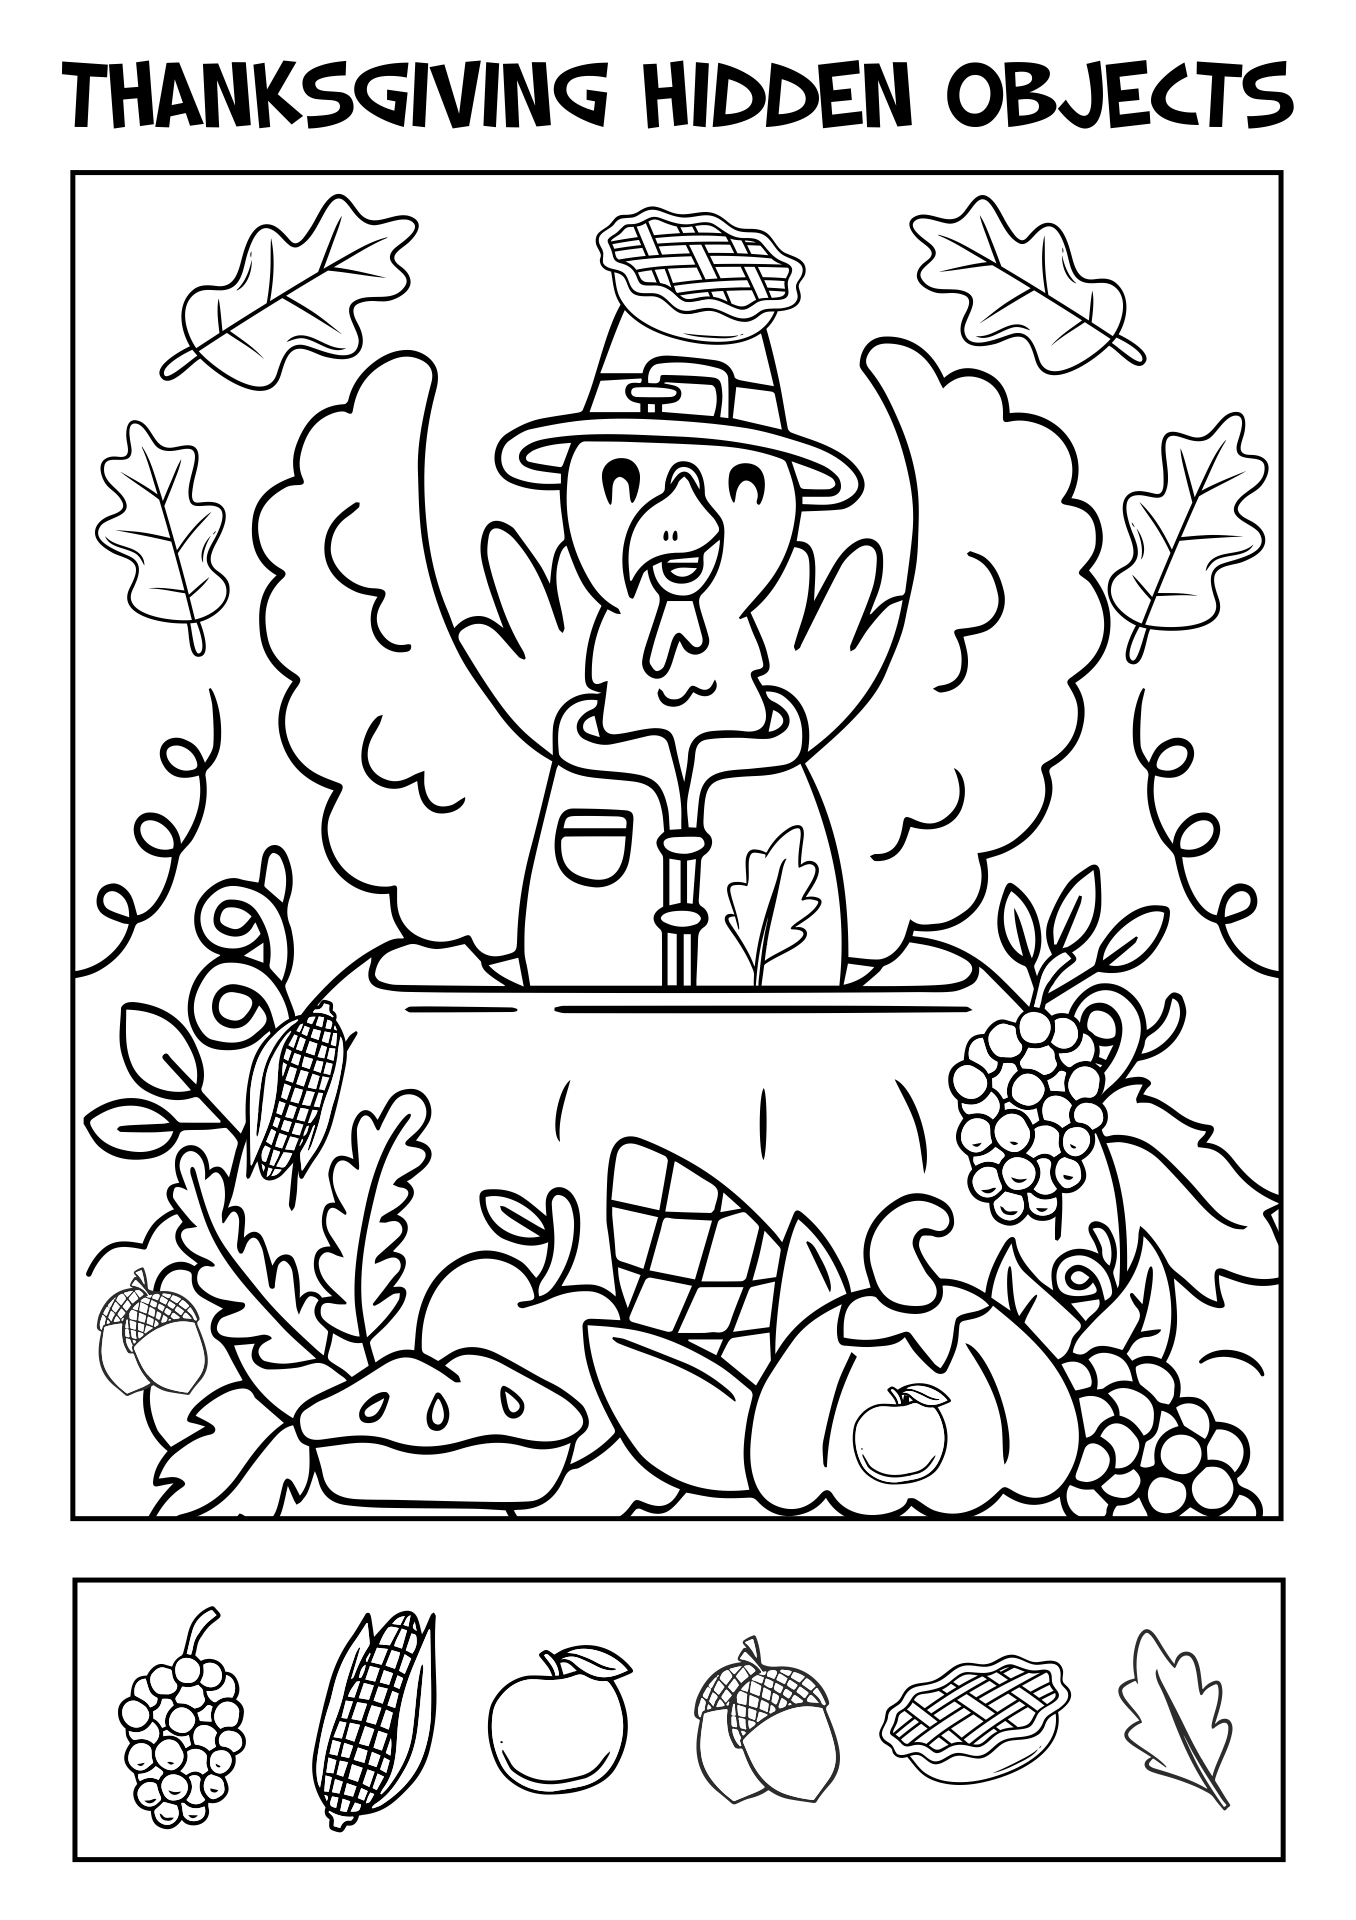 4 Images of Printable Thanksgiving Hidden Object Games